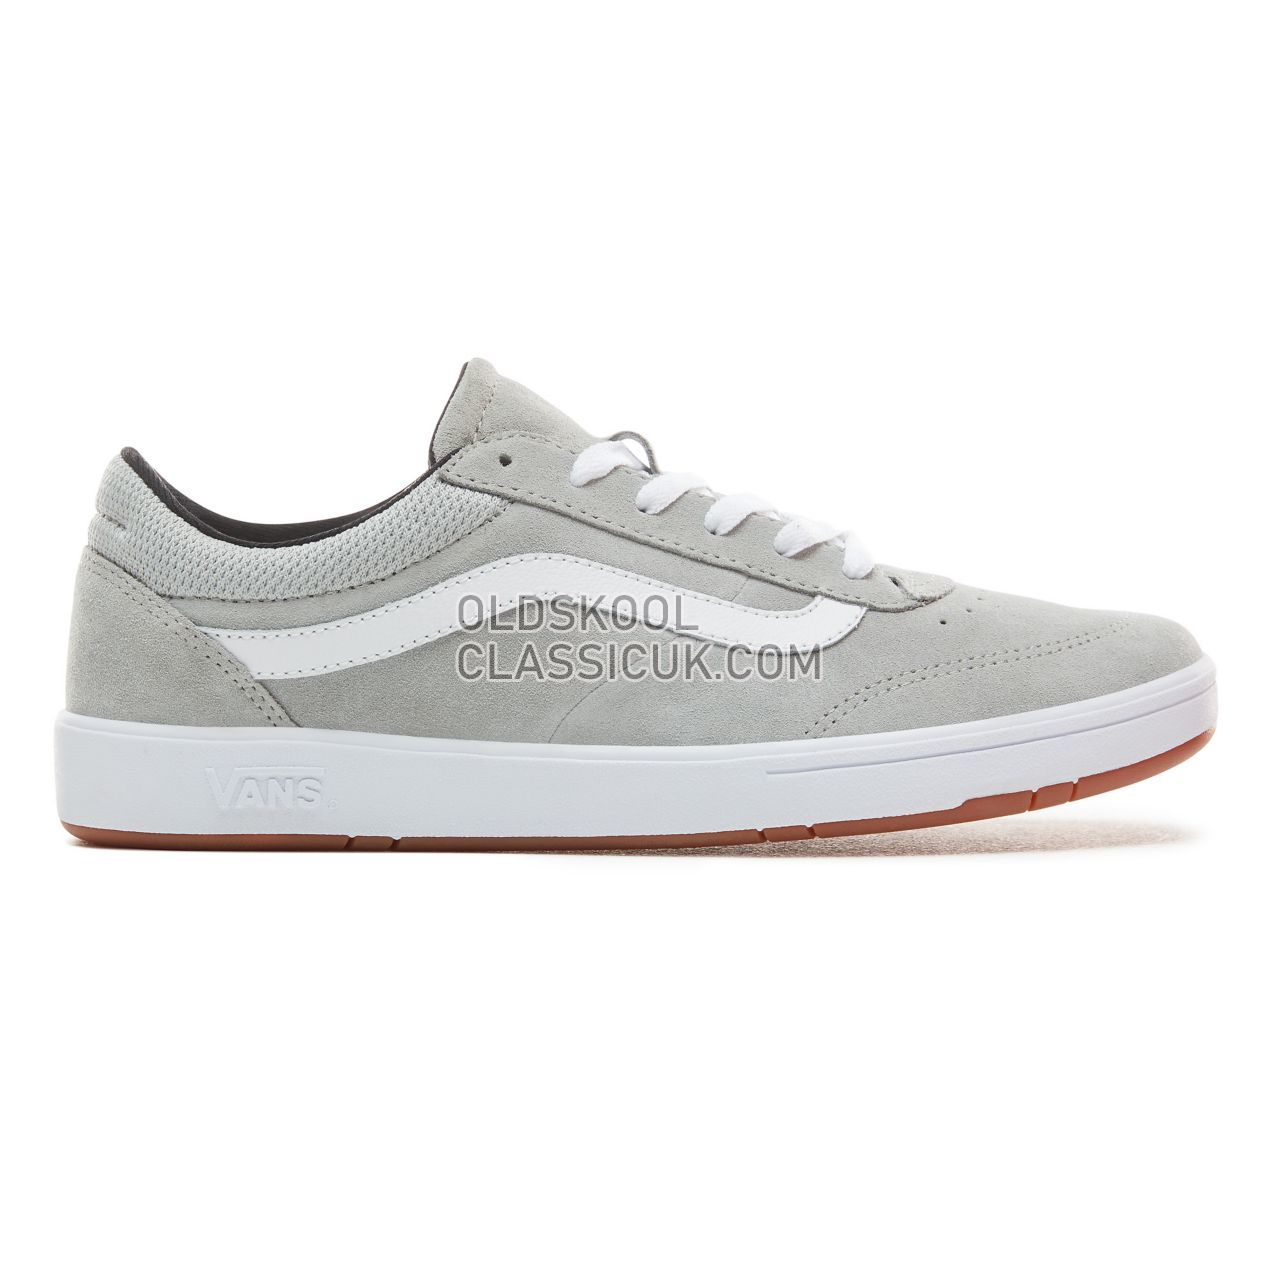 Vans Staple Ultracush Cruze Sneakers Mens (Staple) Belgian Block/True White VN0A3WLZVTV Shoes